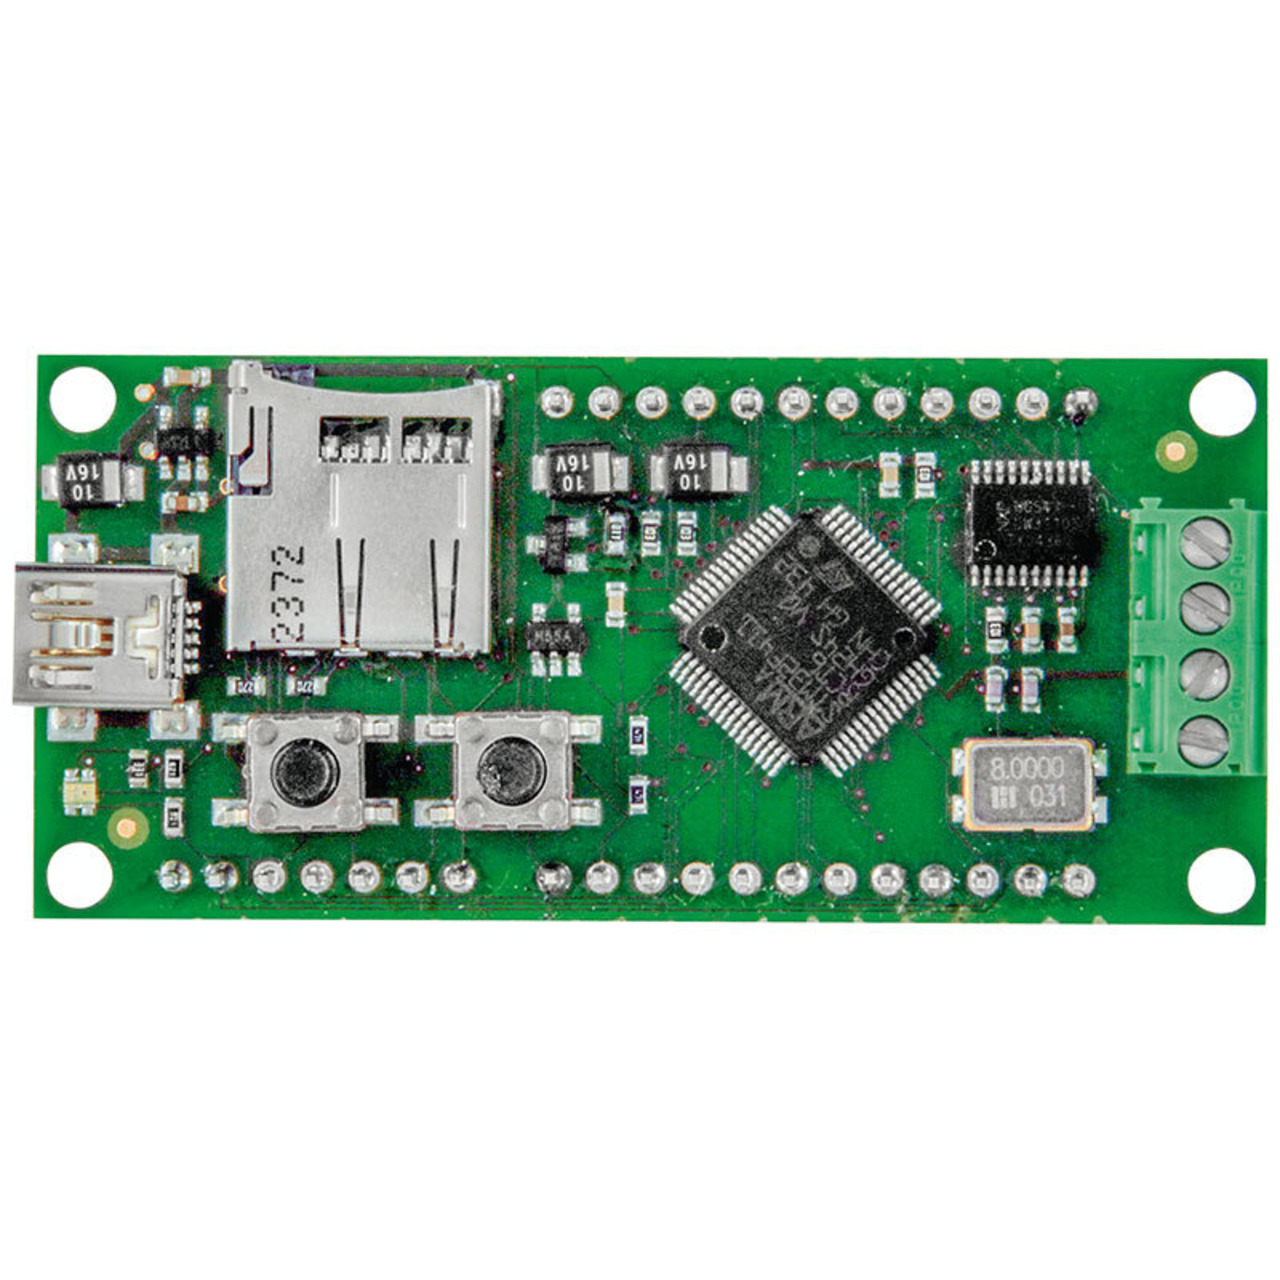 LED-Player M (Multiprotokoll) fund-252 r WS2812-LEDs